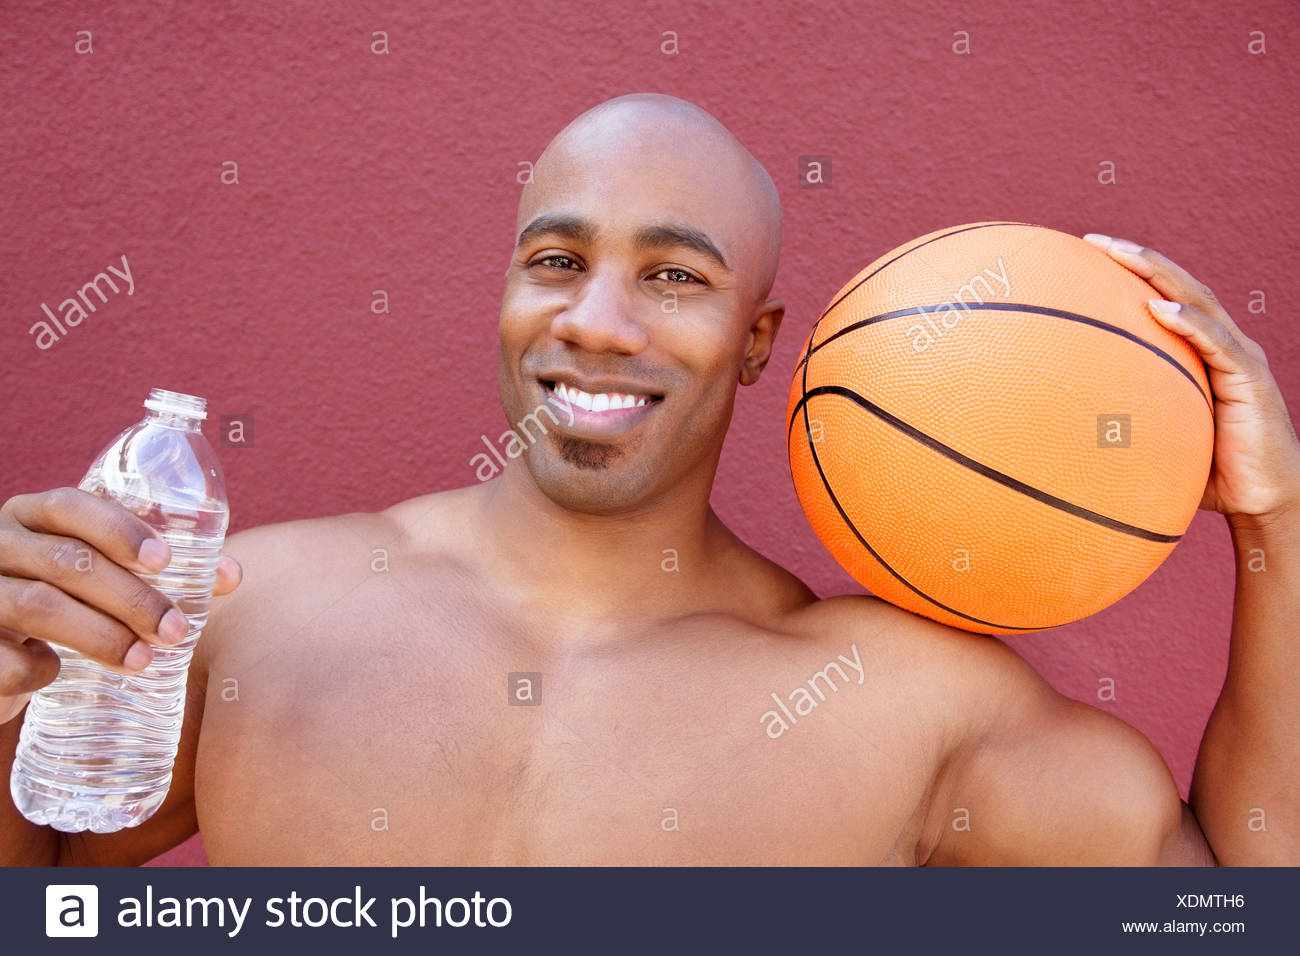 Portrait of an African American athlete with basketball and water bottle over colored background - Stock Image